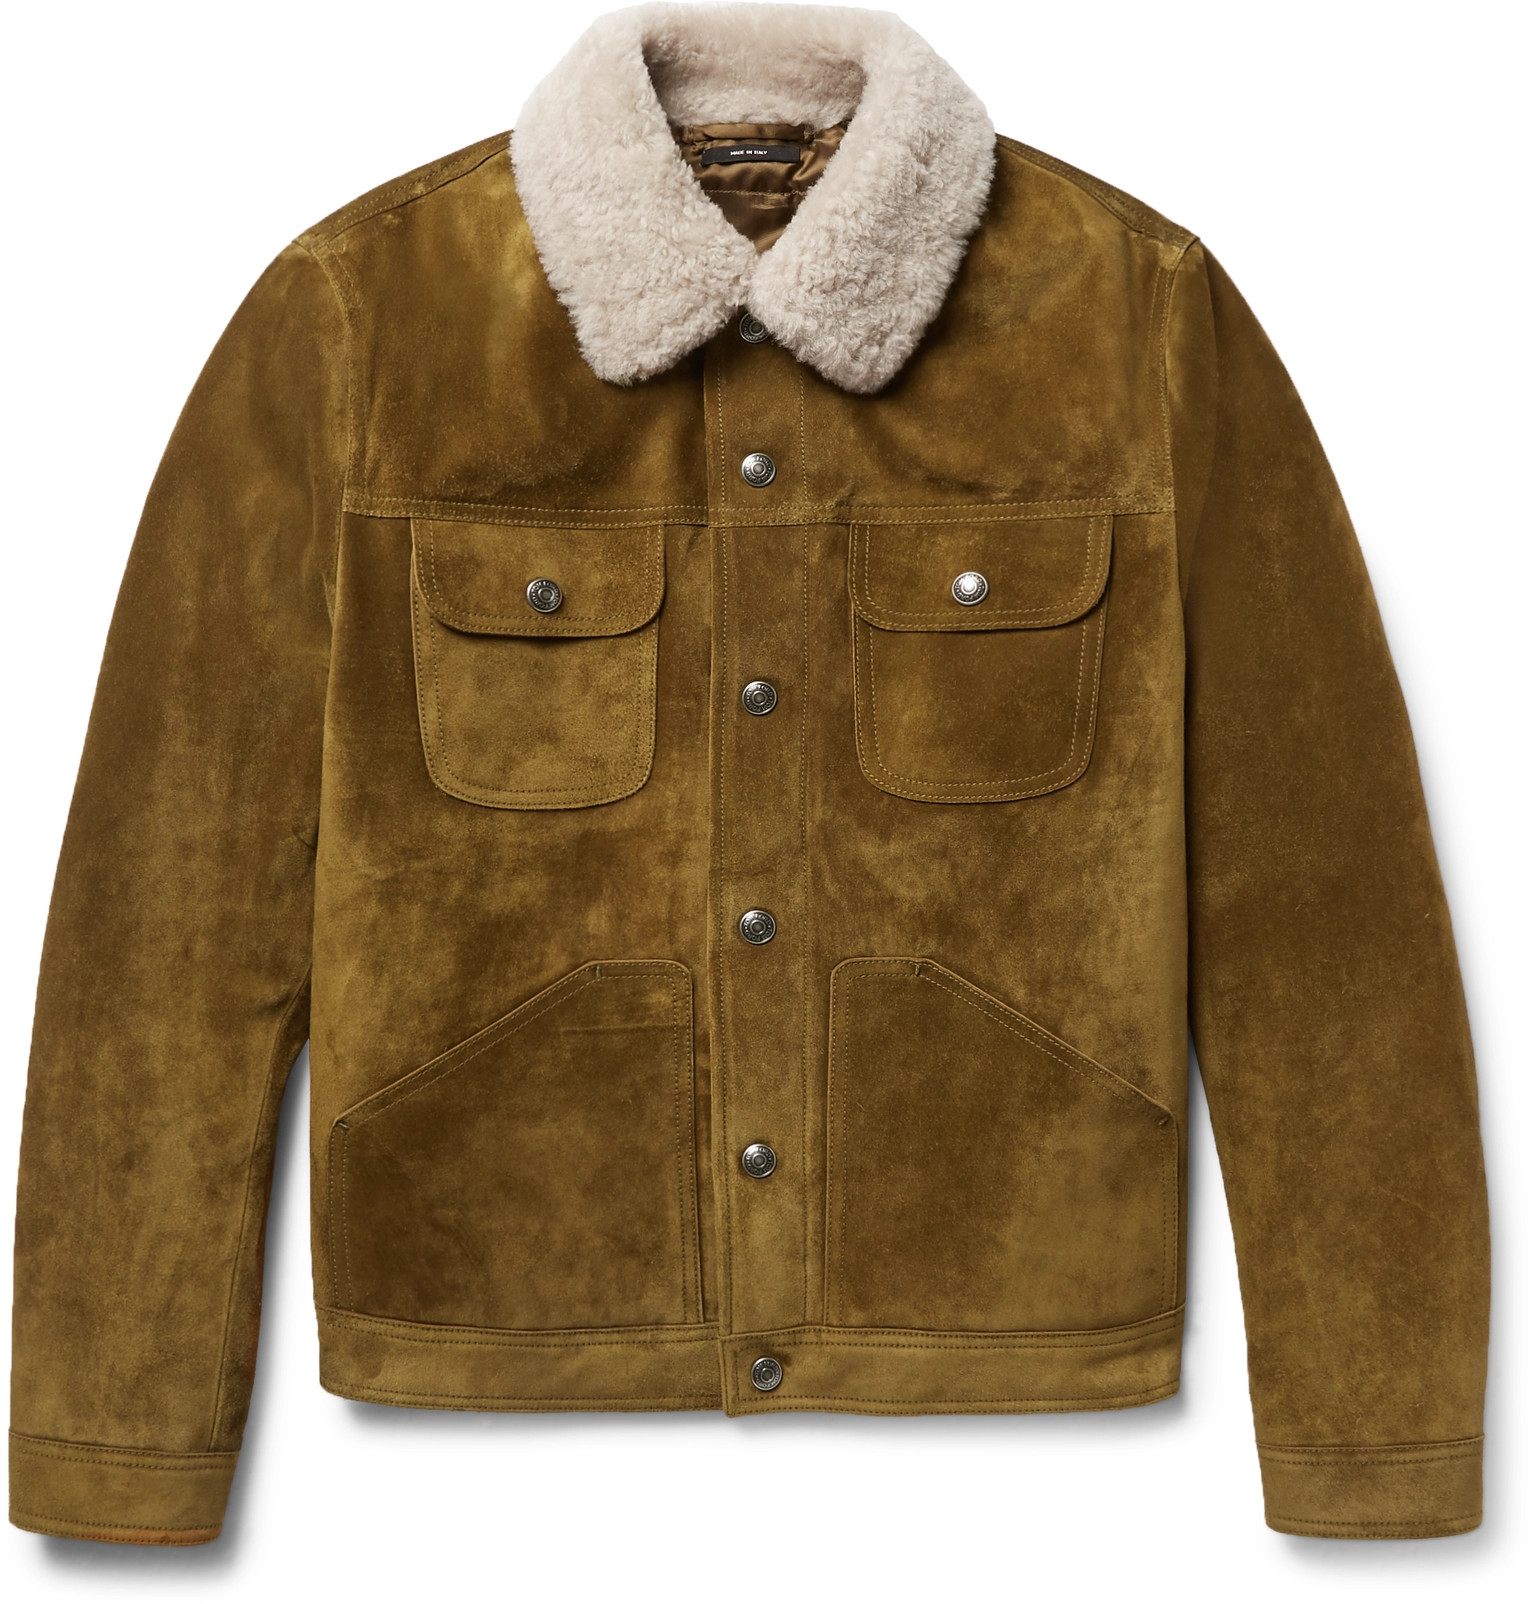 7fee3b30c74d TOM FORD Shearling-Trimmed Suede Jacket